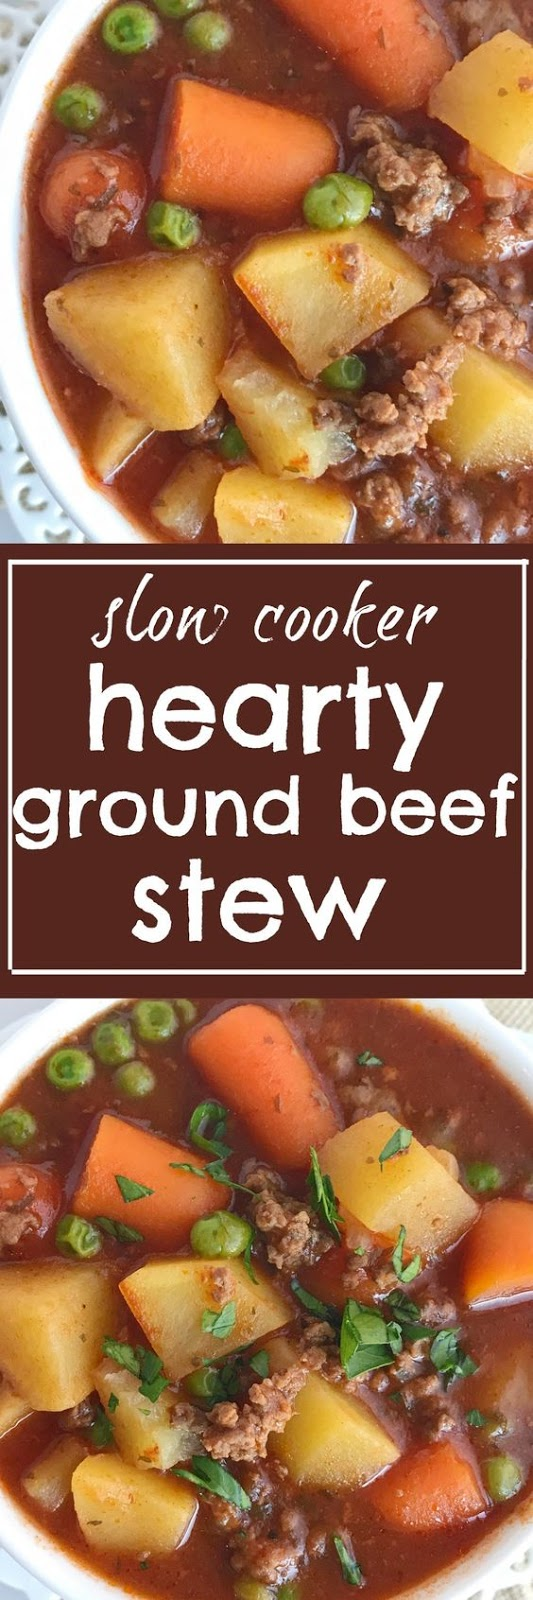 THE MOST INSPIRING SLOW COOKER HEARTY GROUND BEEF STEW